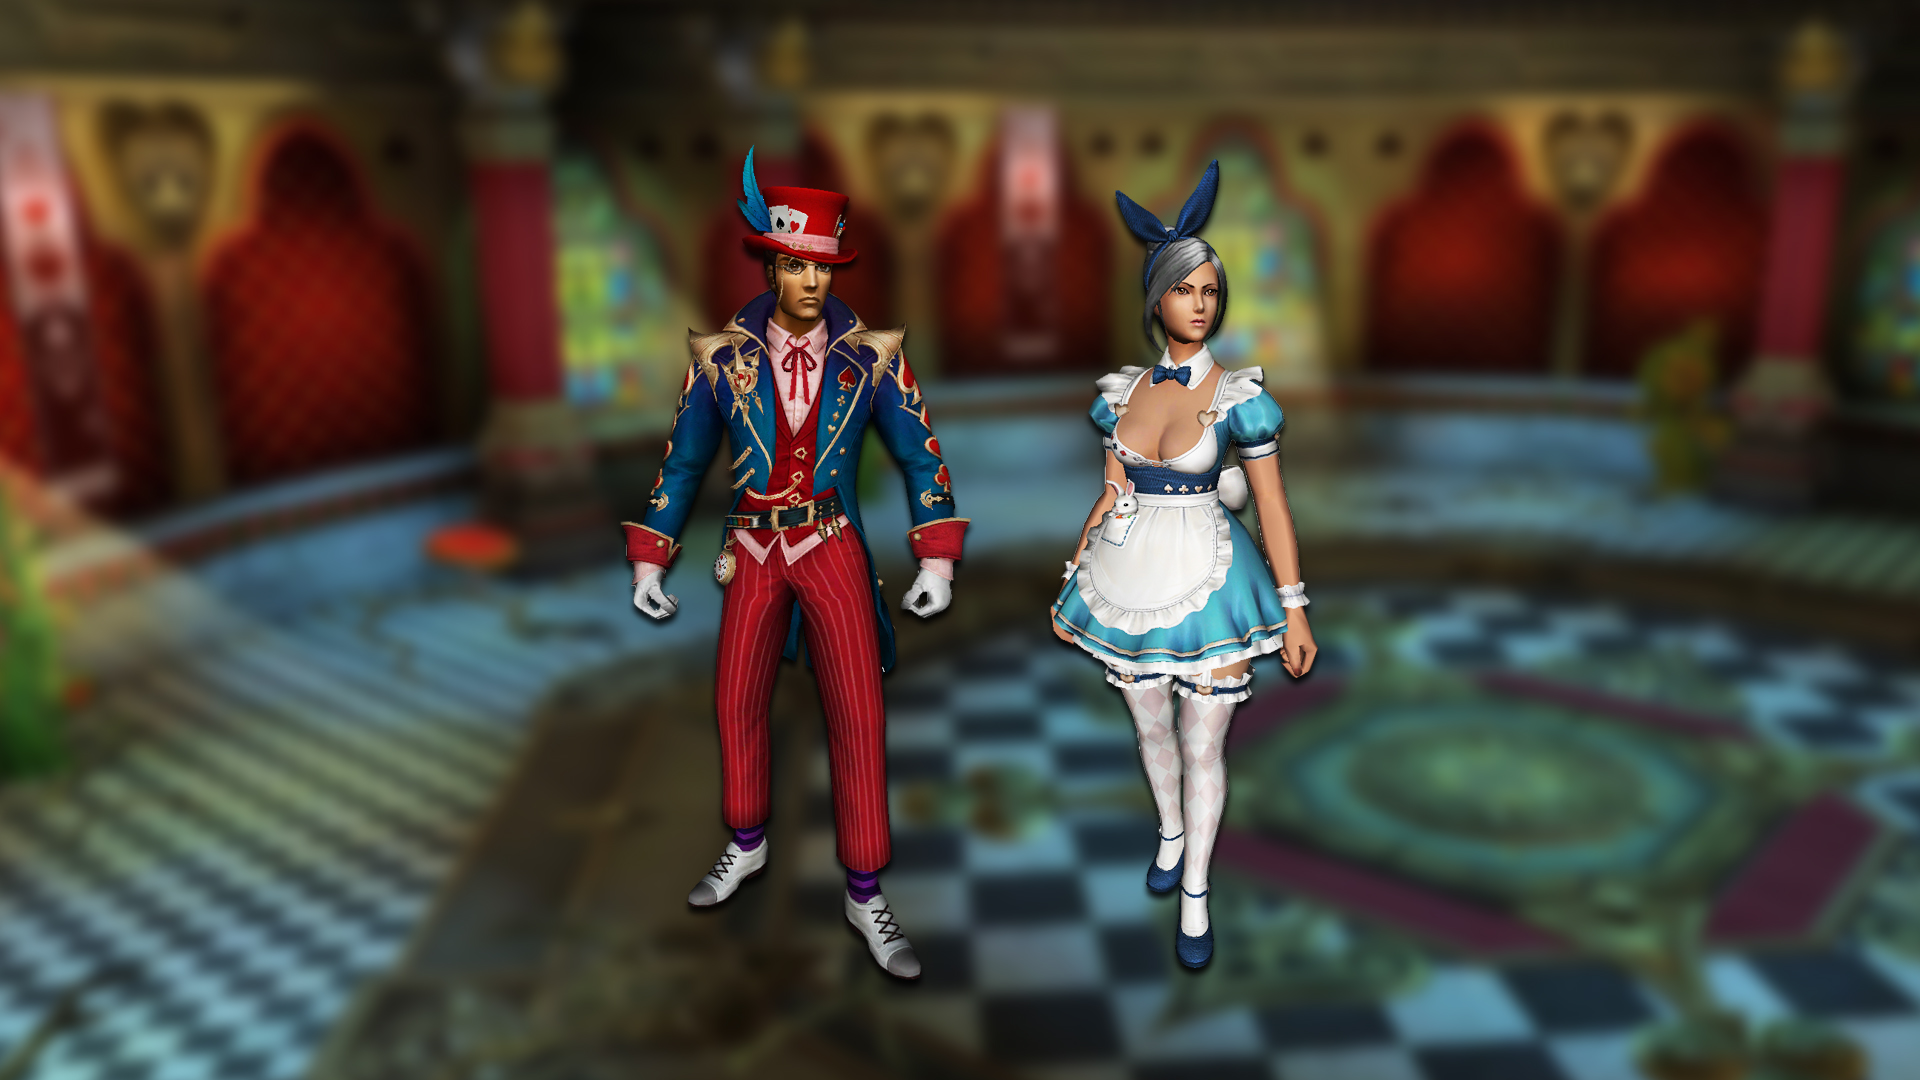 You are currently viewing Wonderland costumes